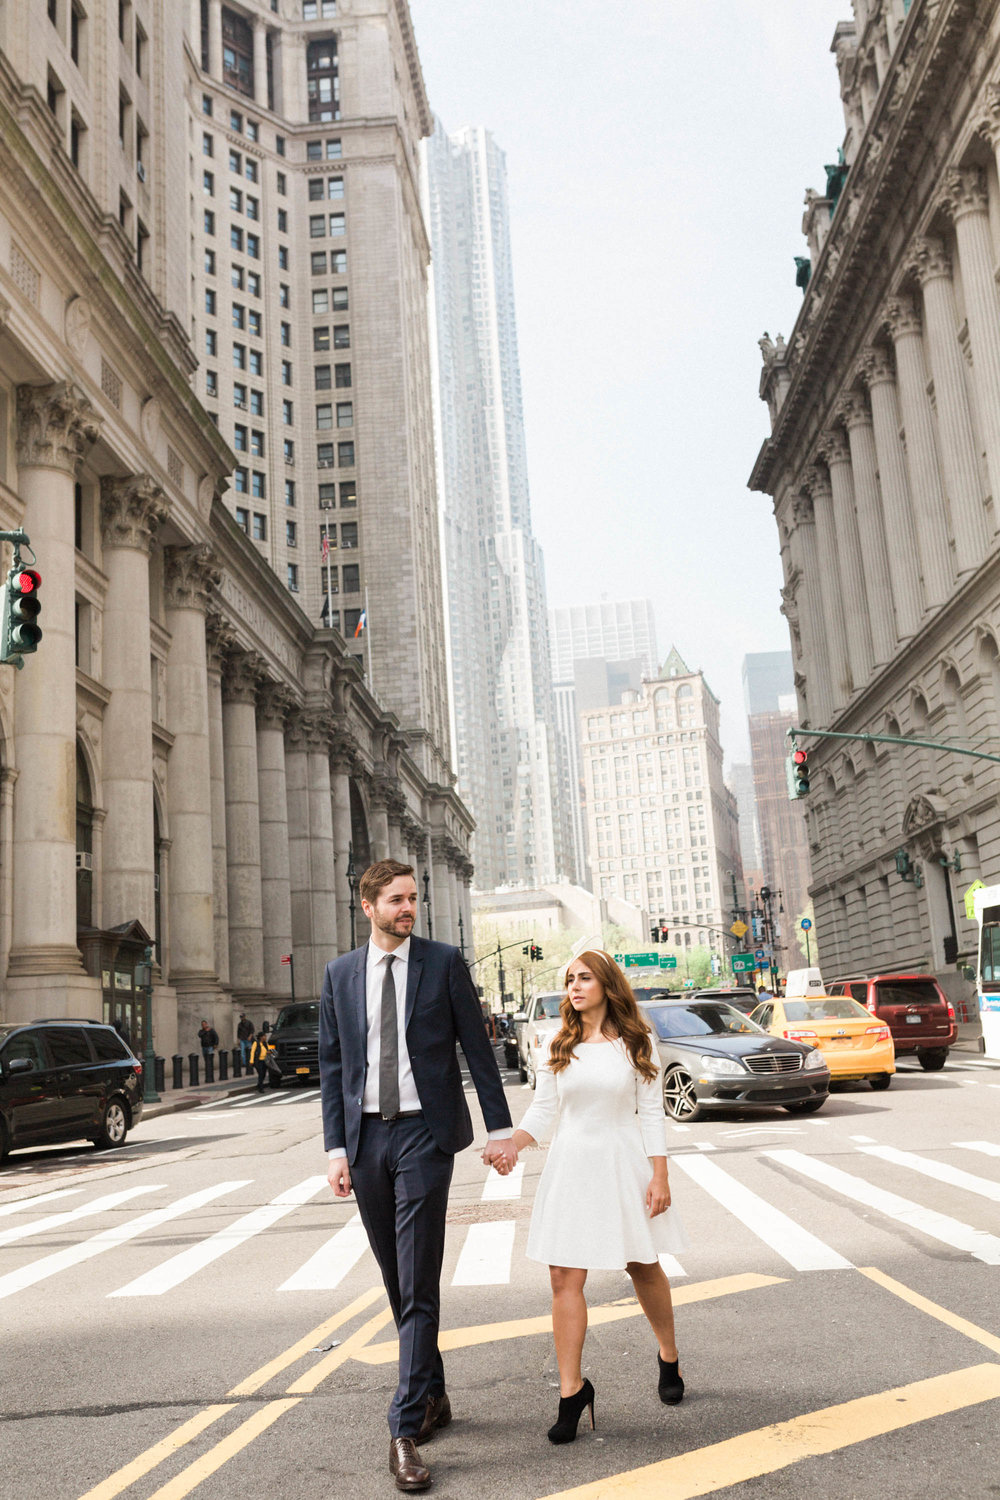 new-york-city-hall-elopement-photographer-elizabethtsungphoto-51.jpg